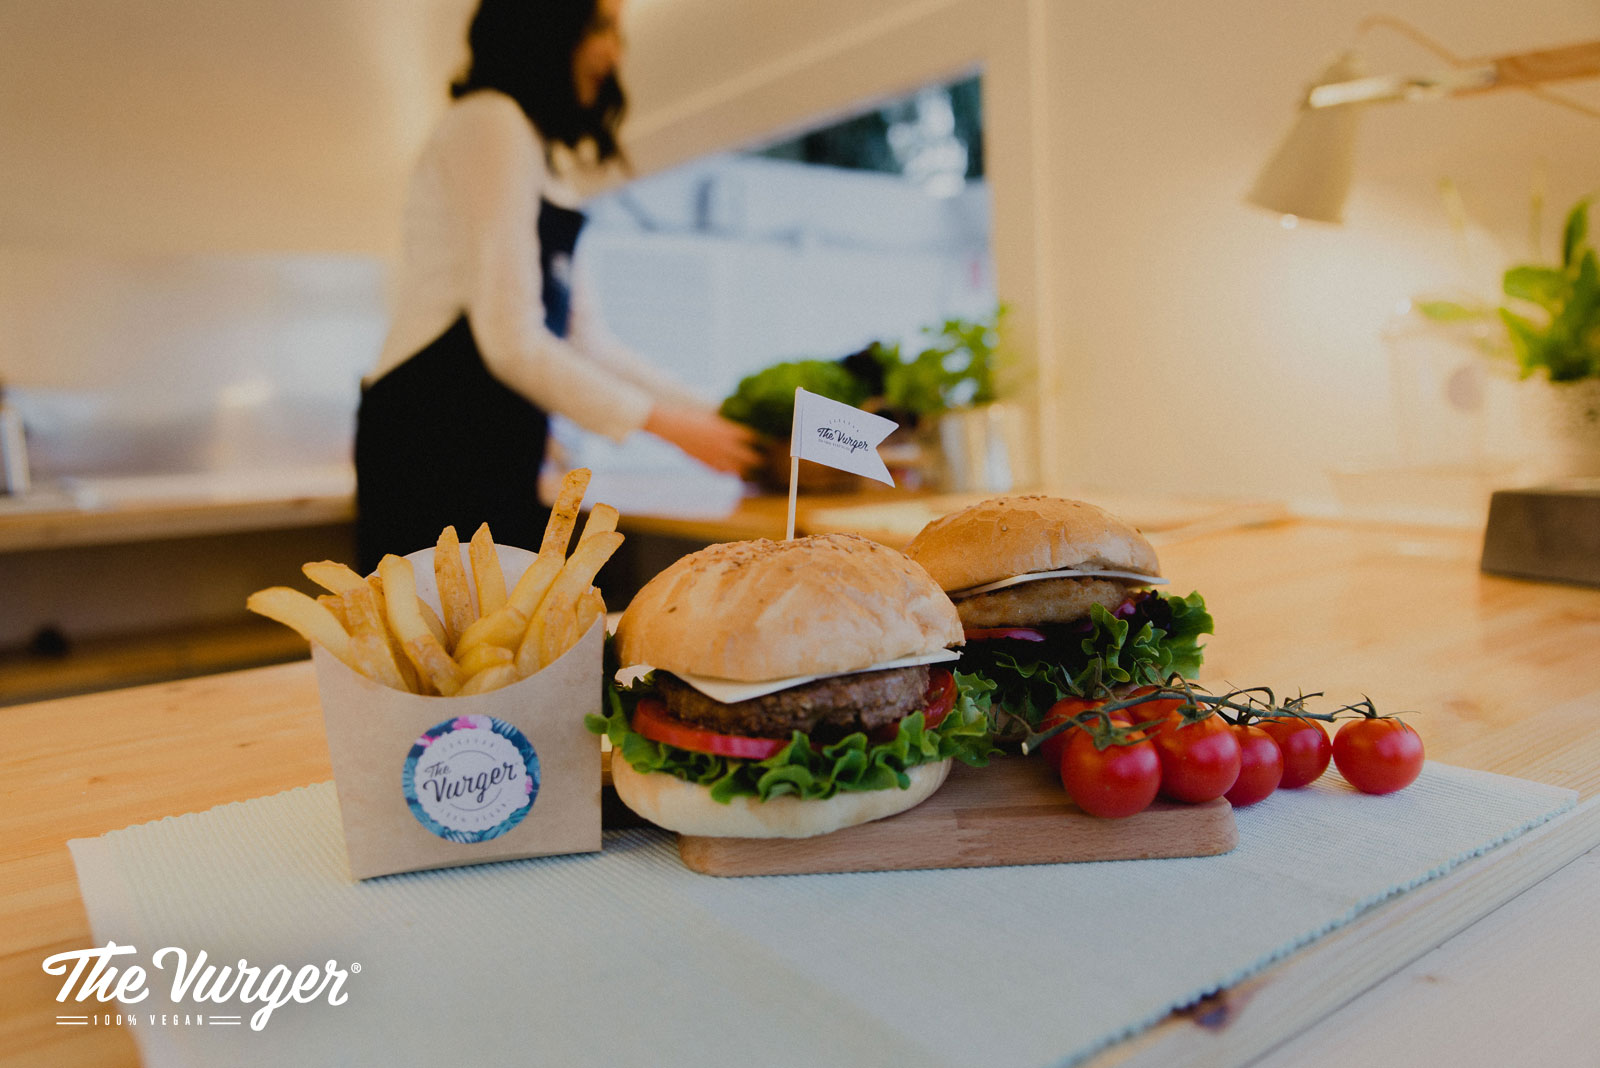 The-Vurger-foodtruck-vegano